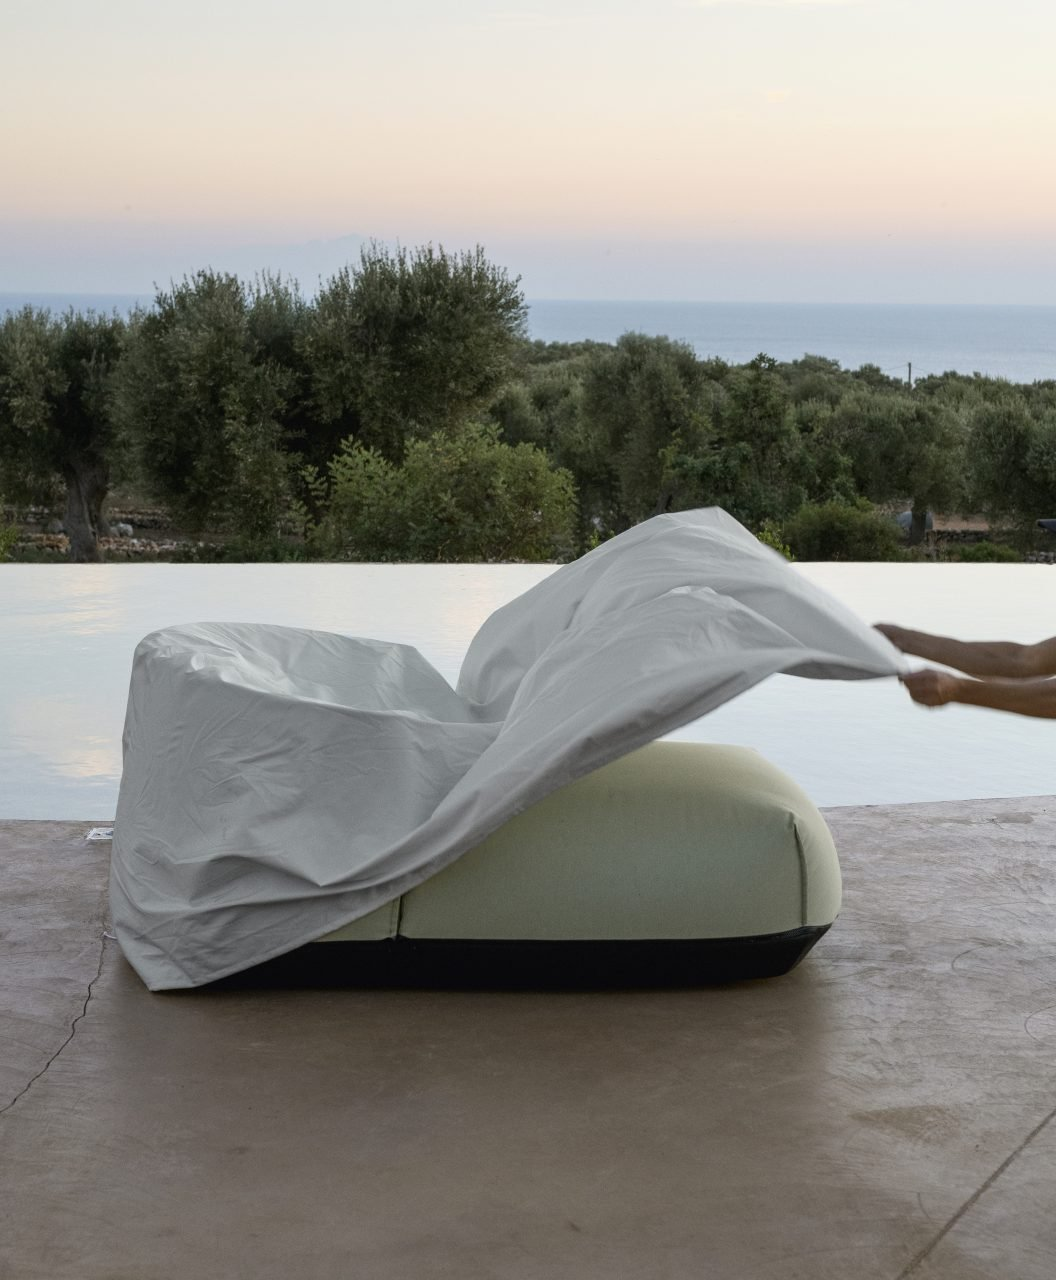 Casper Furniture Cover accessory from Kristalia, designed by Bluezone